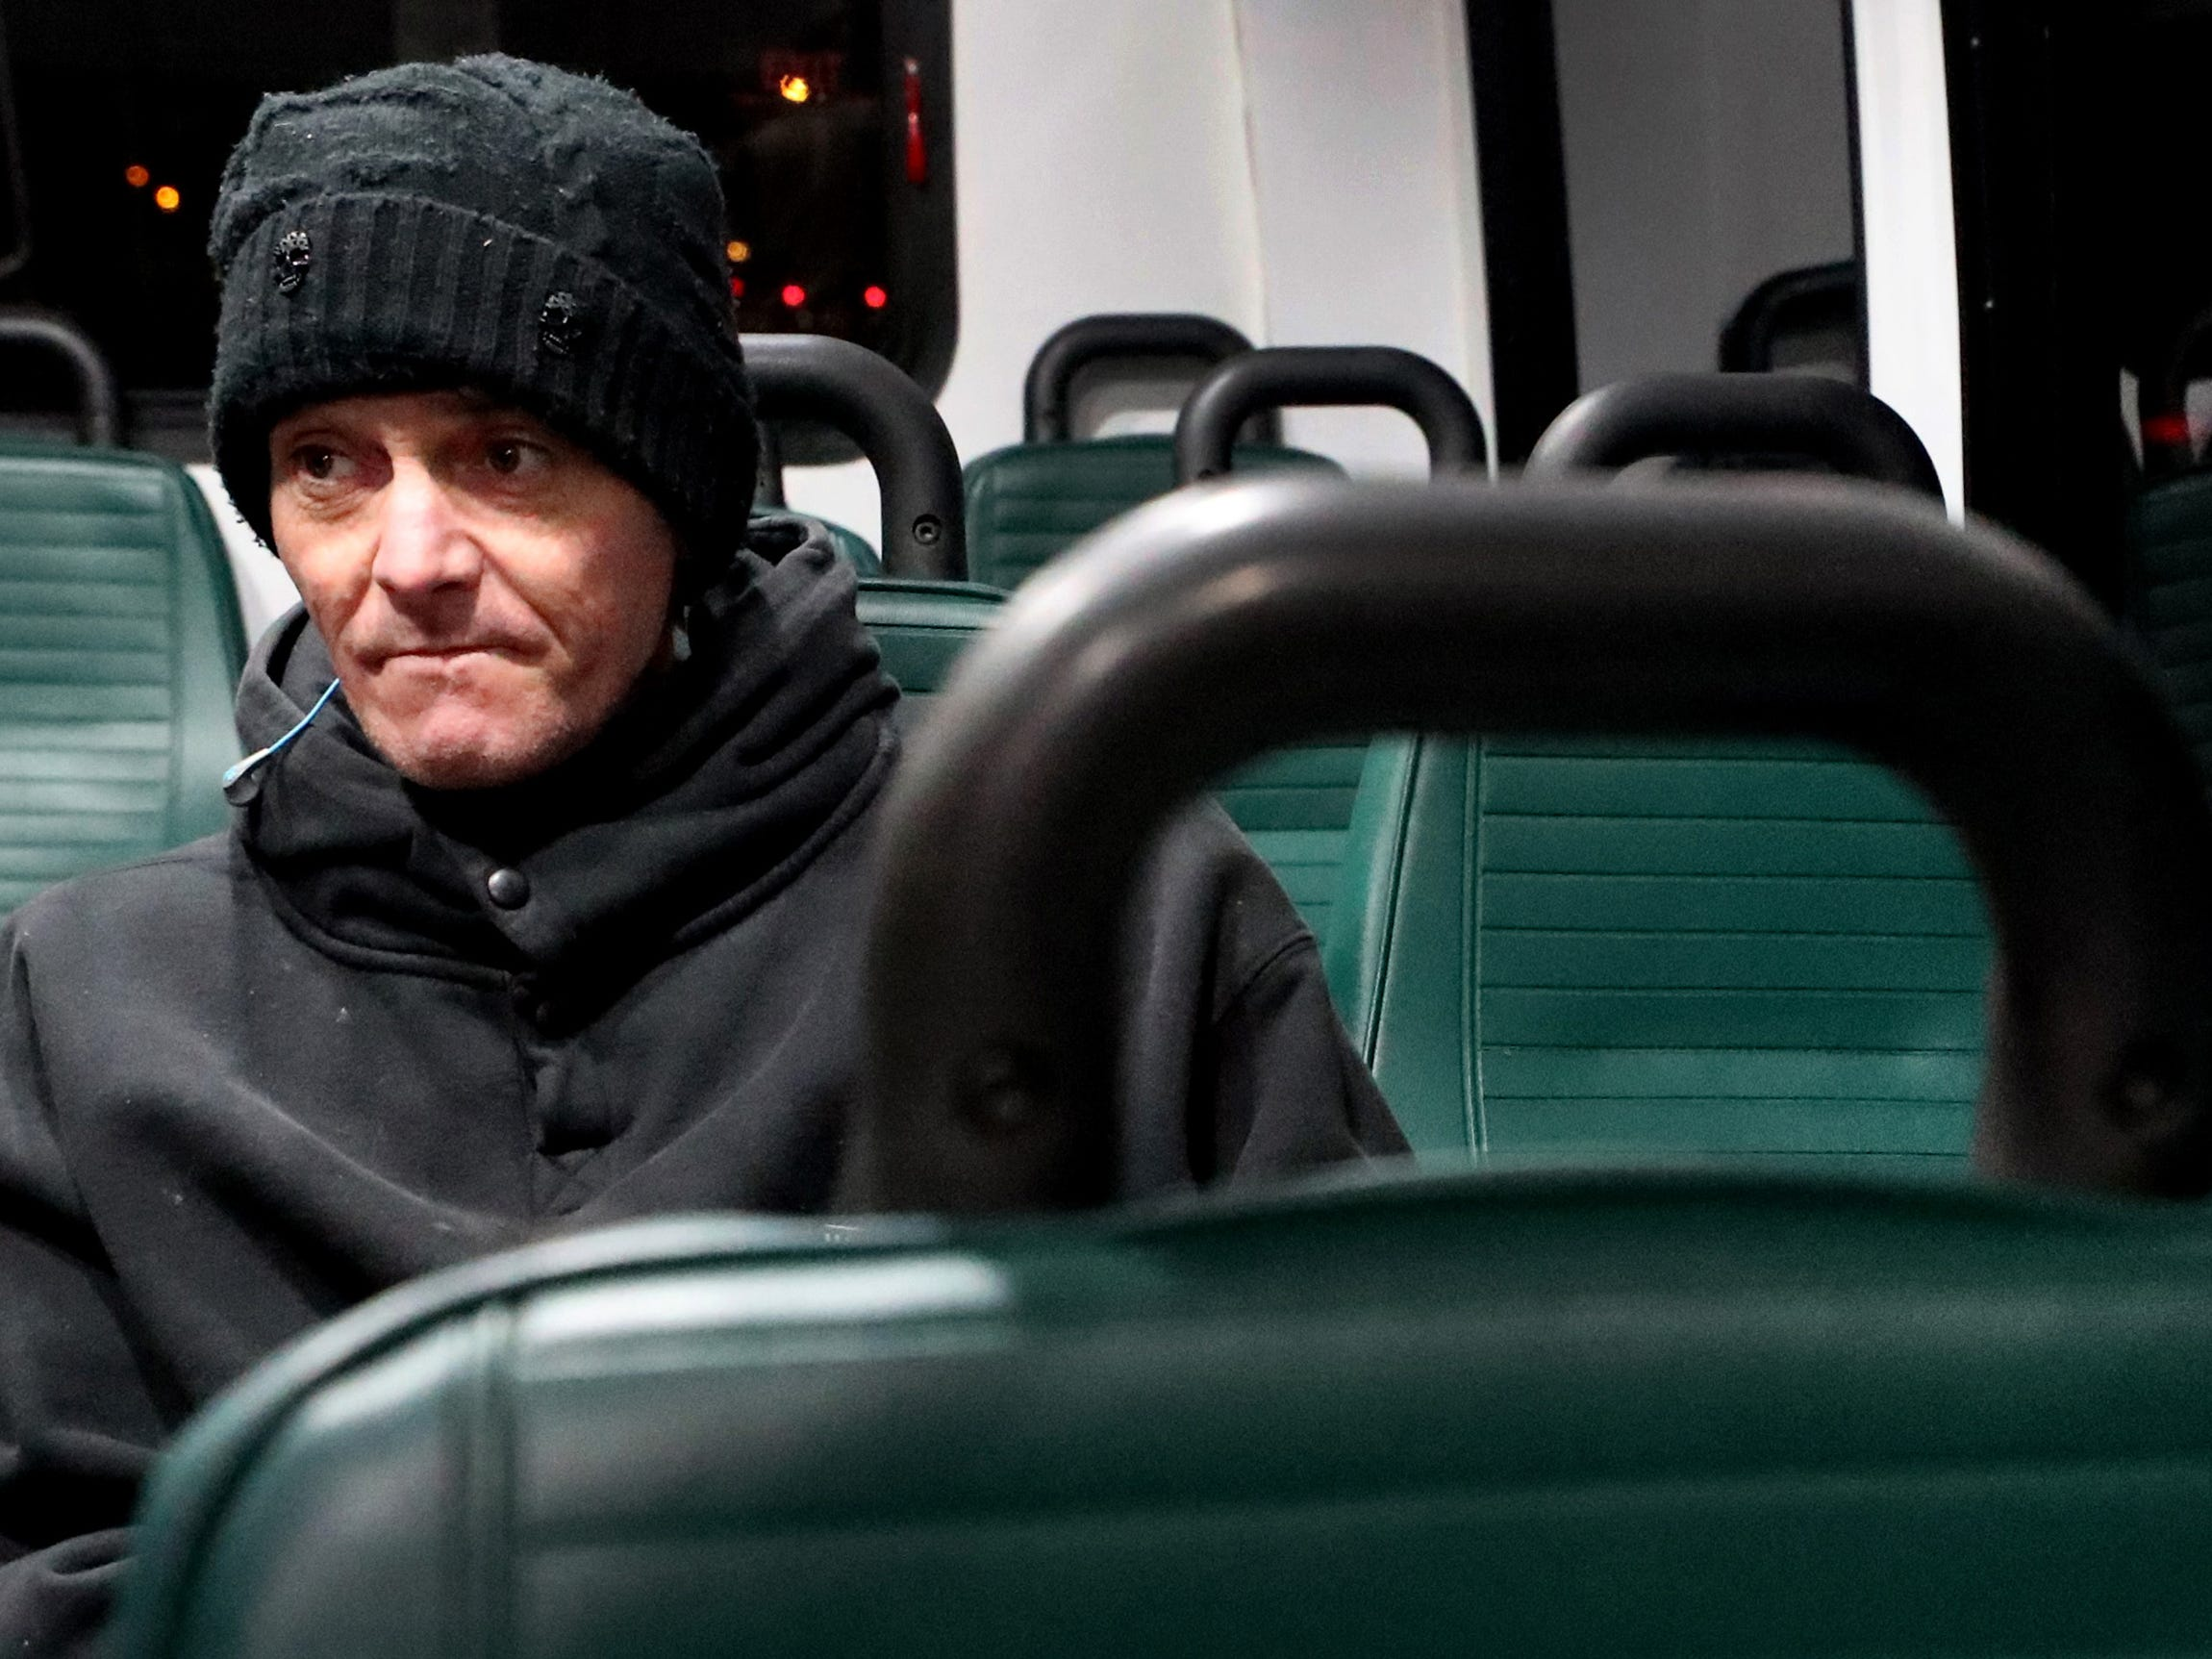 Scott Medlee rides the 6 am bus to go to work at Demos' Restaurant, on Tuesday, March 19, 2019. Many people rely on the Murfreesboro bus service Rover to get back and forth to their jobs.